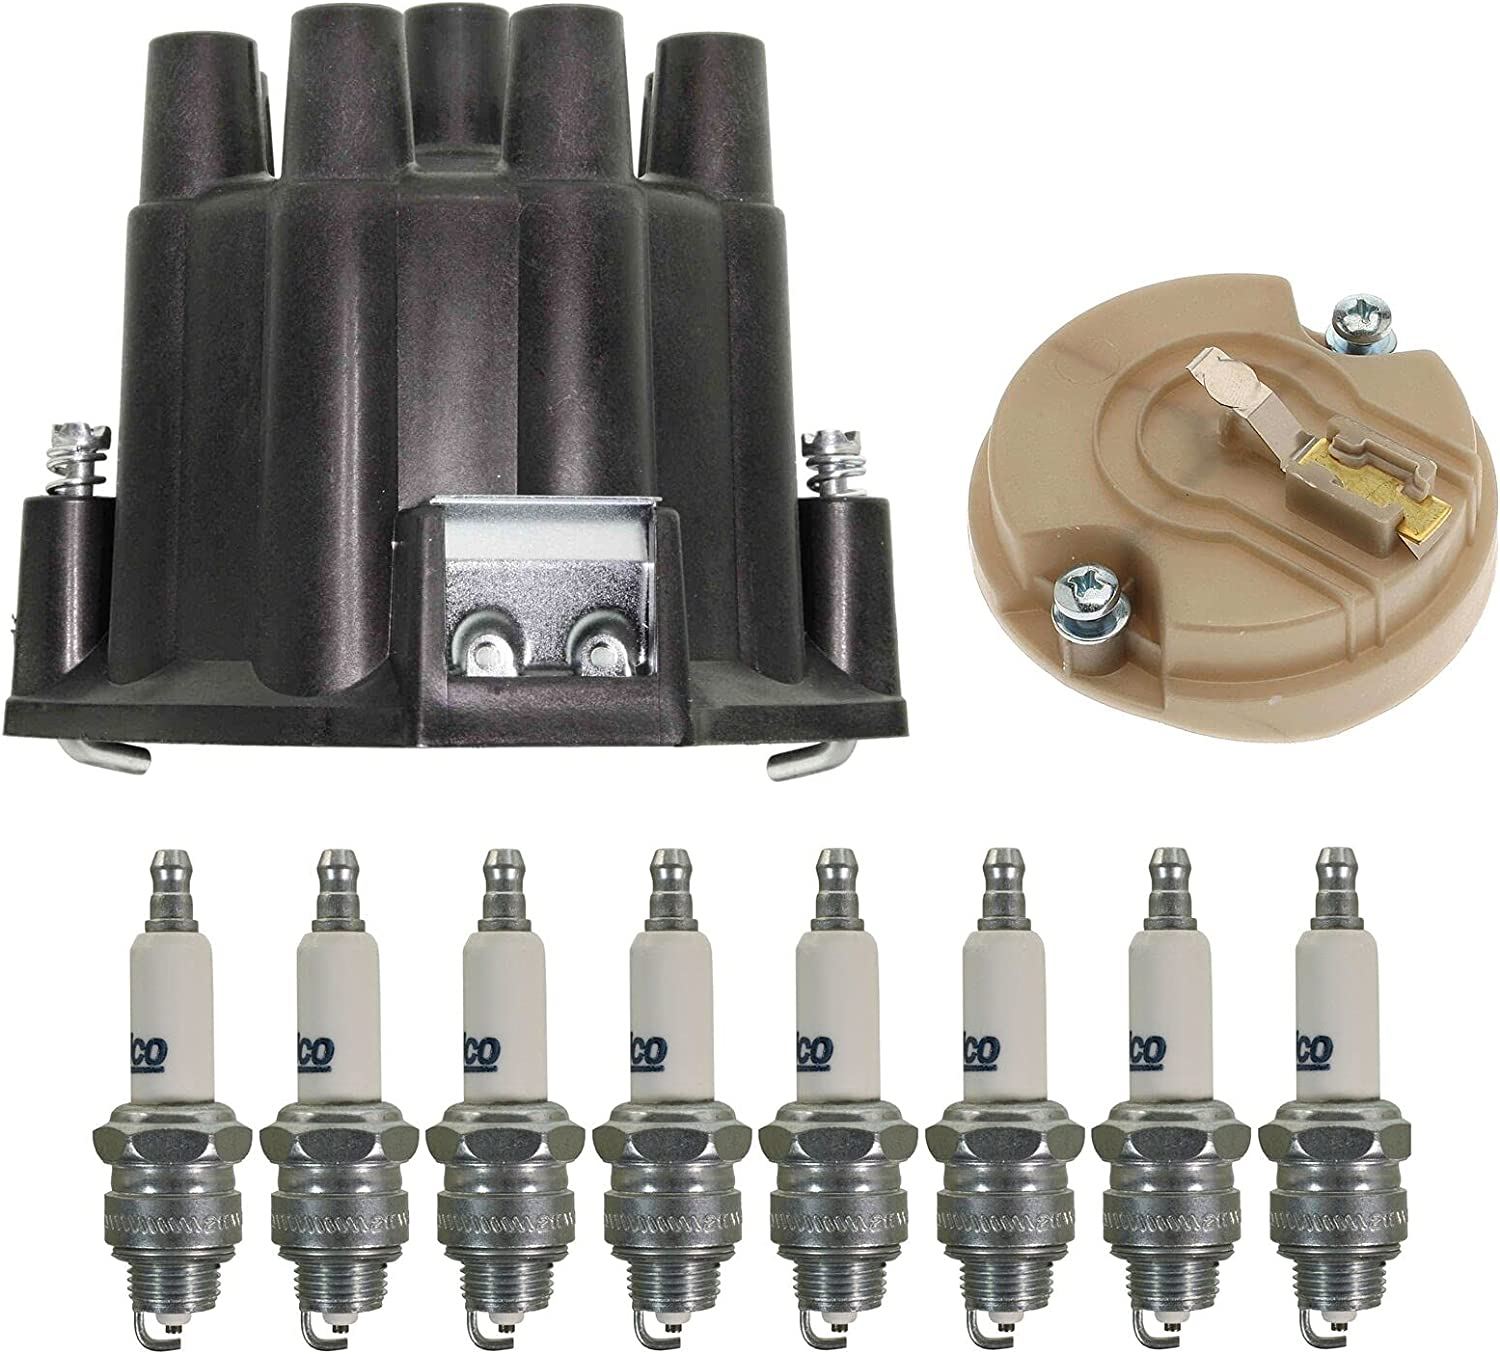 Ignition Kit 1 year warranty Distributor Popular Rotor Cap Spark Compatible Plugs with